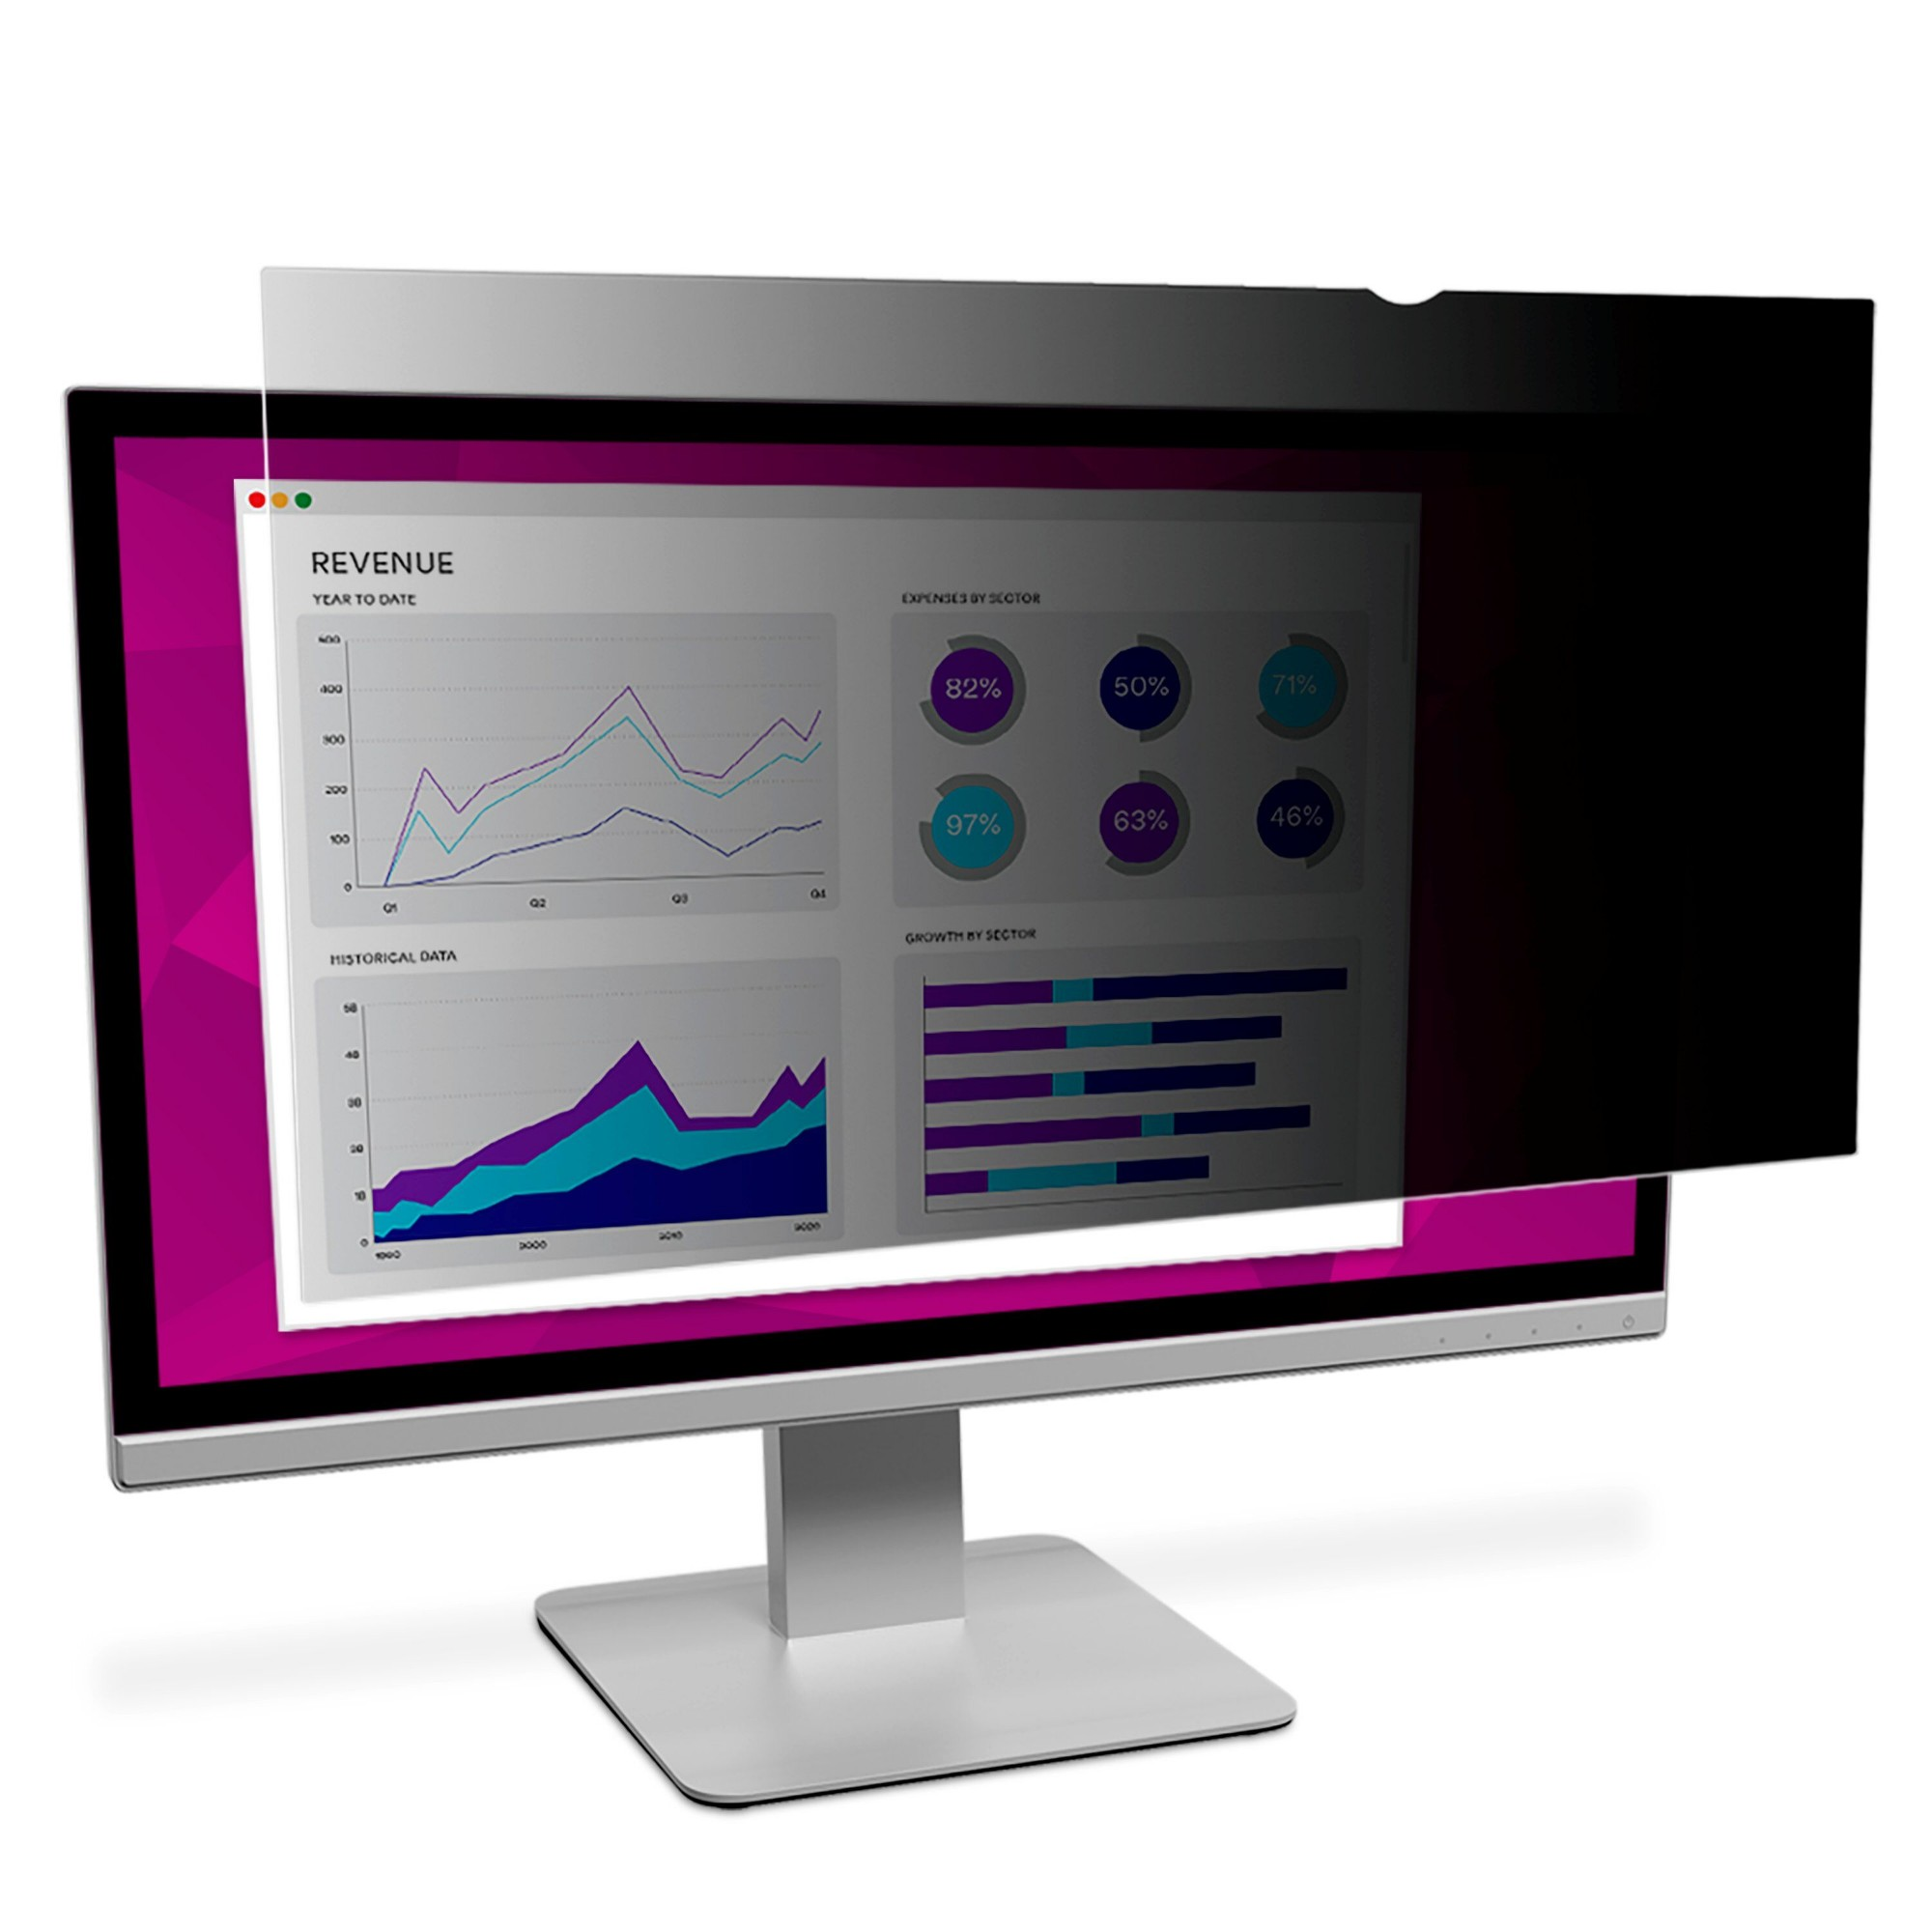 "3M High Clarity Privacy Filter for 24"" Widescreen Monitor"